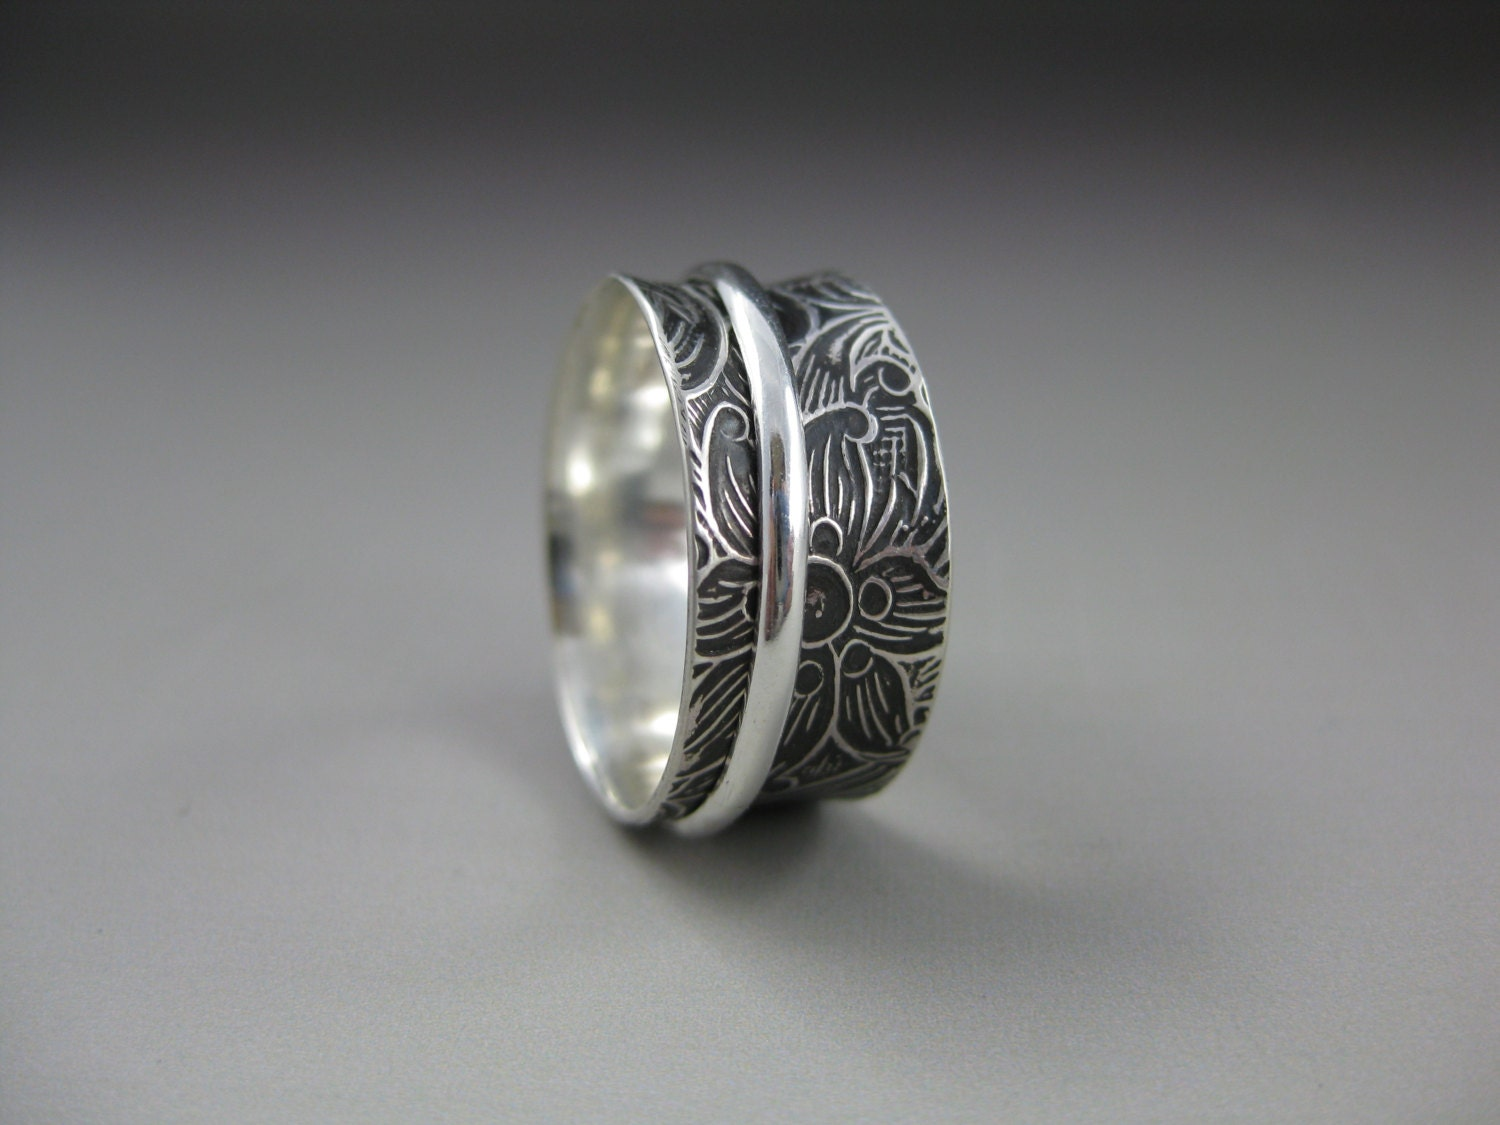 Swirly Patterned Silver Spinner Ring - formandfunktion